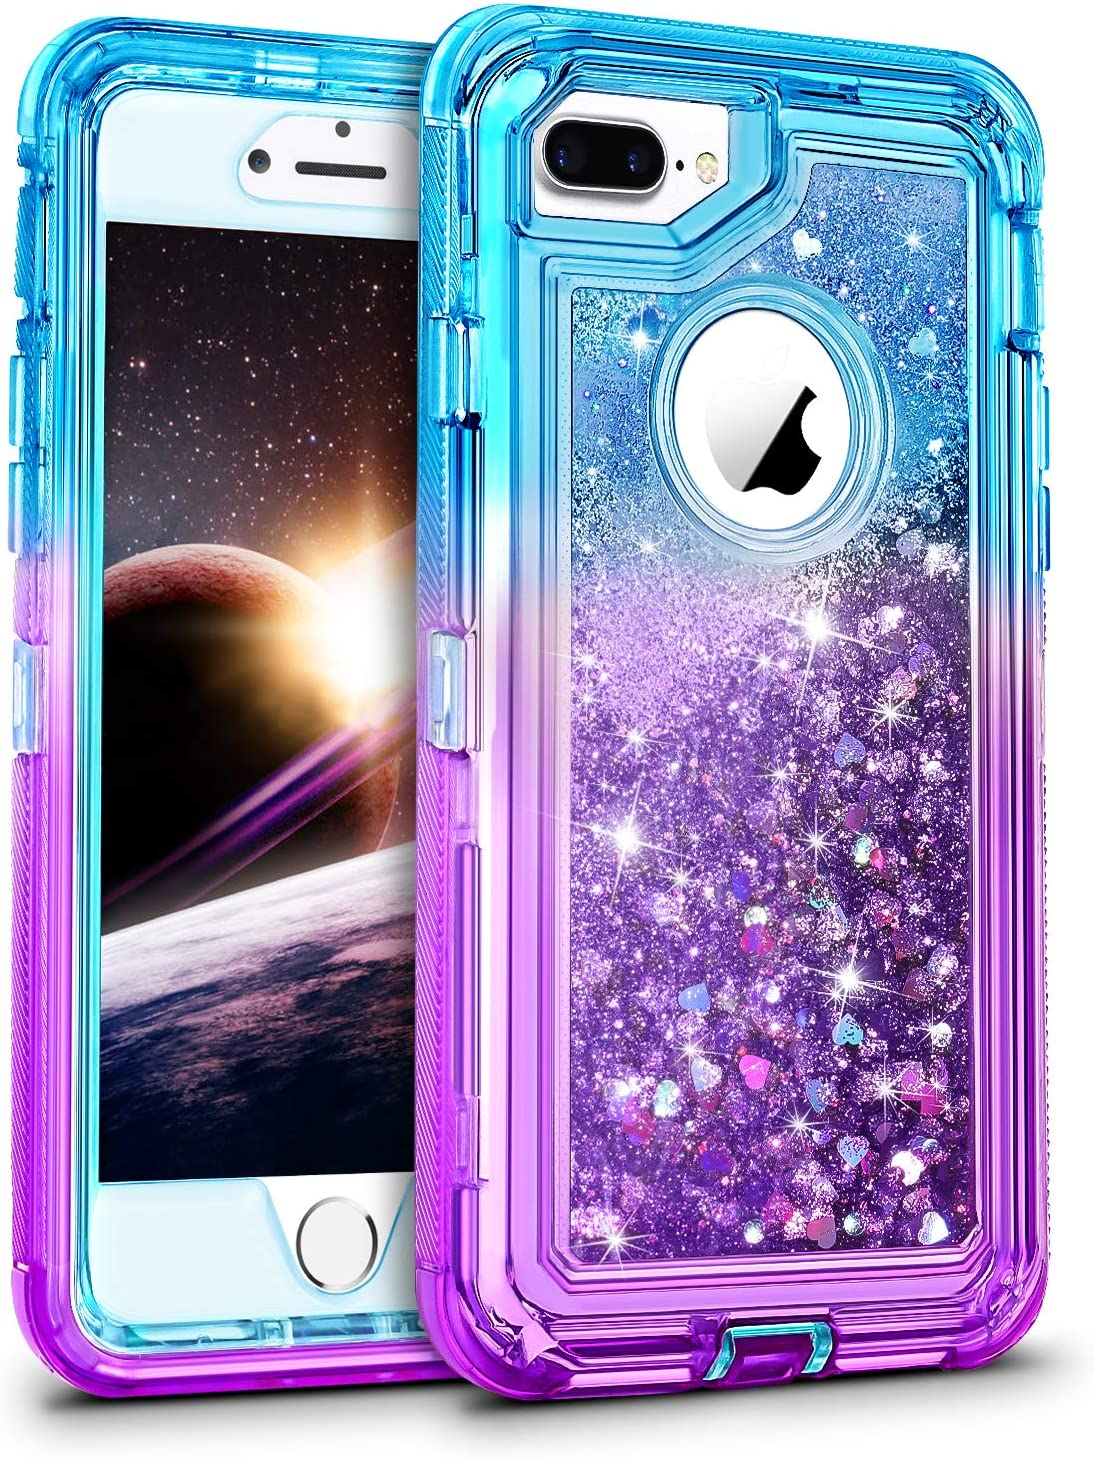 Amazon Com Wesadn Case For Iphone 8 Plus Case Iphone 7 Plus Case For Girls Women Cute Glitter Liquid Protective Bling Heavy Duty Shockproof Gradient Cover For Iphone 8 Plus 7 Plus 6 Plus